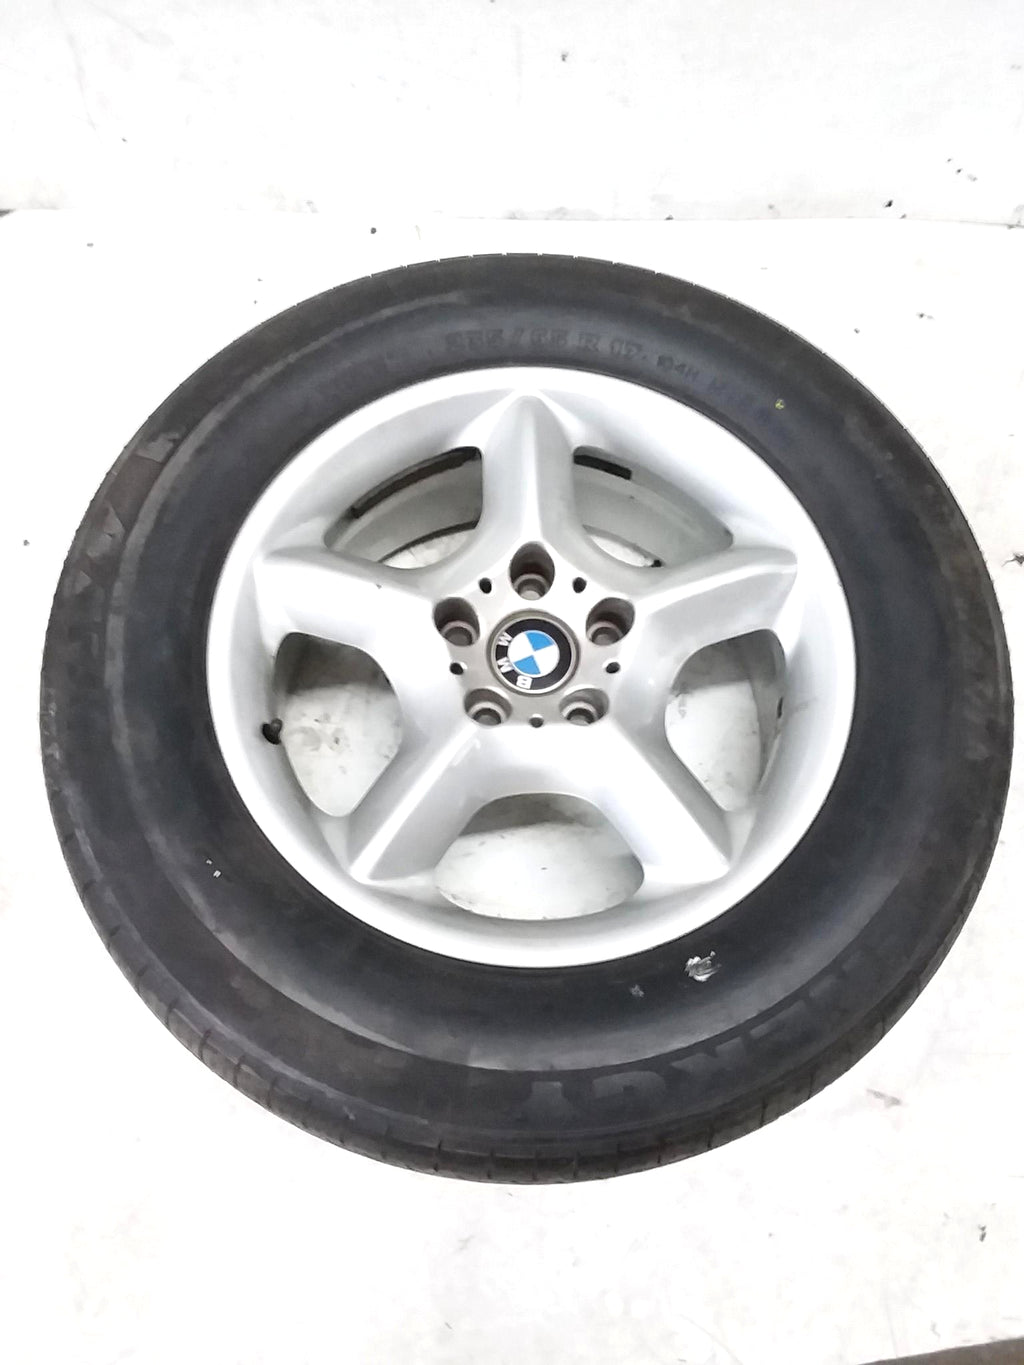 00-06BMW E53 X5 USED Wheel Rim w Tire 235/65R17.104H M+S OEM 6.6 /32nds 1096159